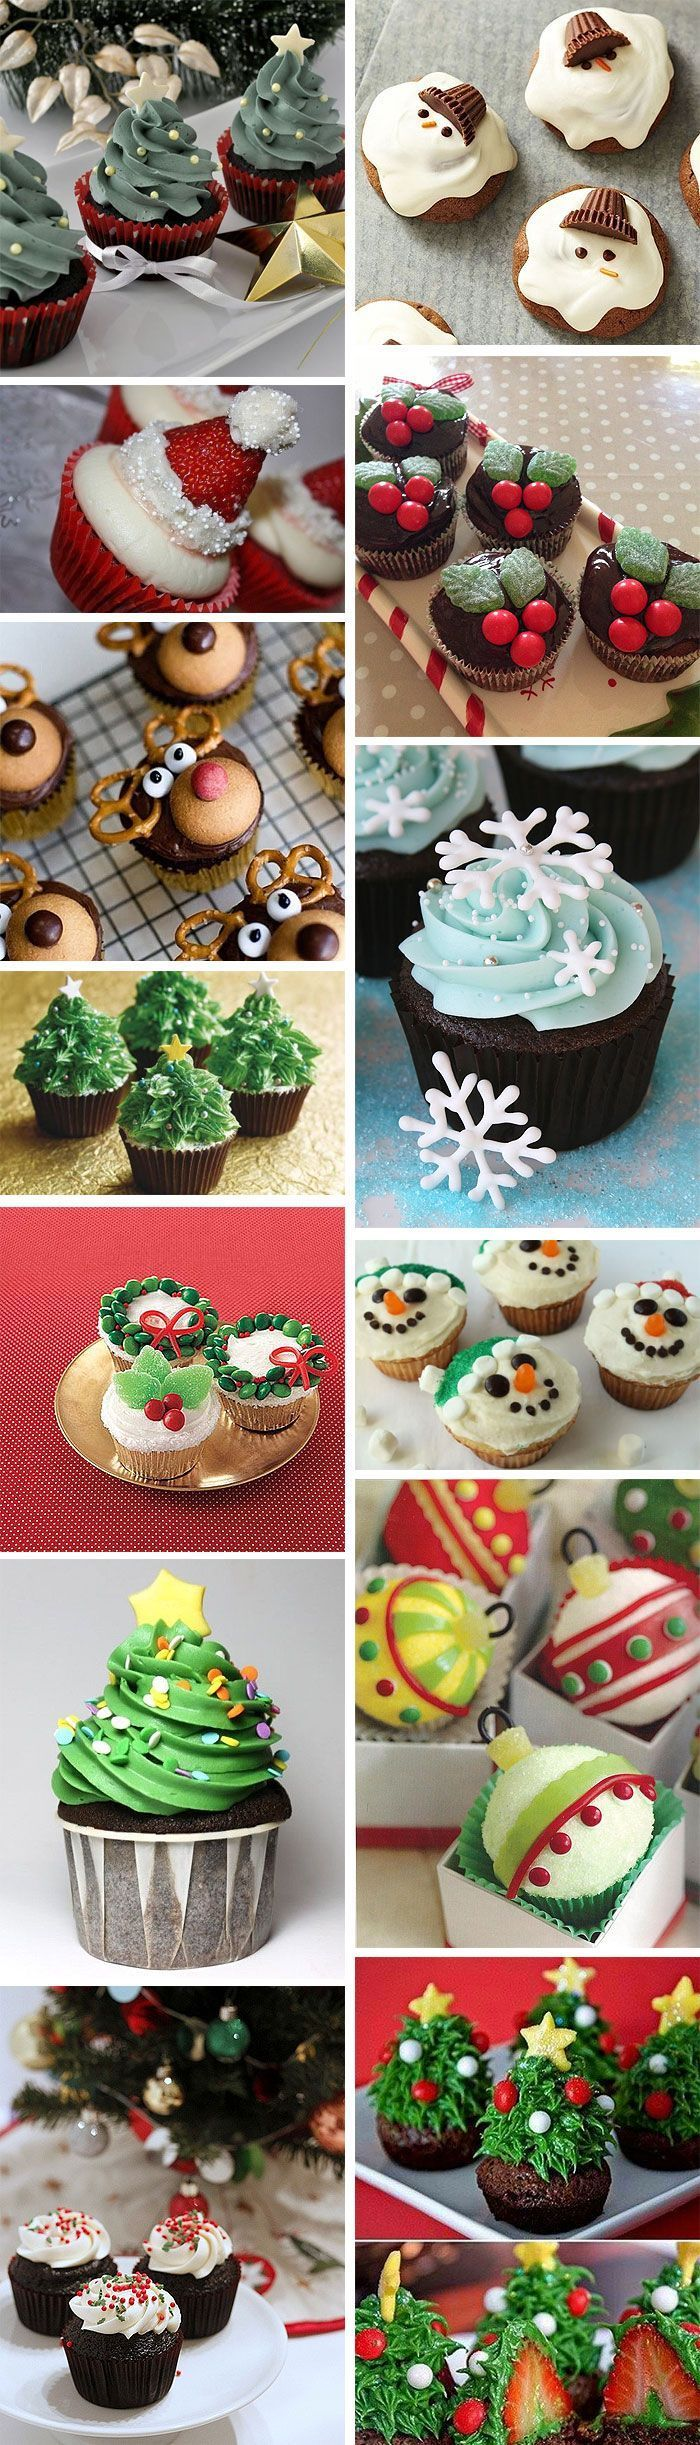 878 best ~Christmas Cakes & Cup Cakes~ images on Pinterest ...